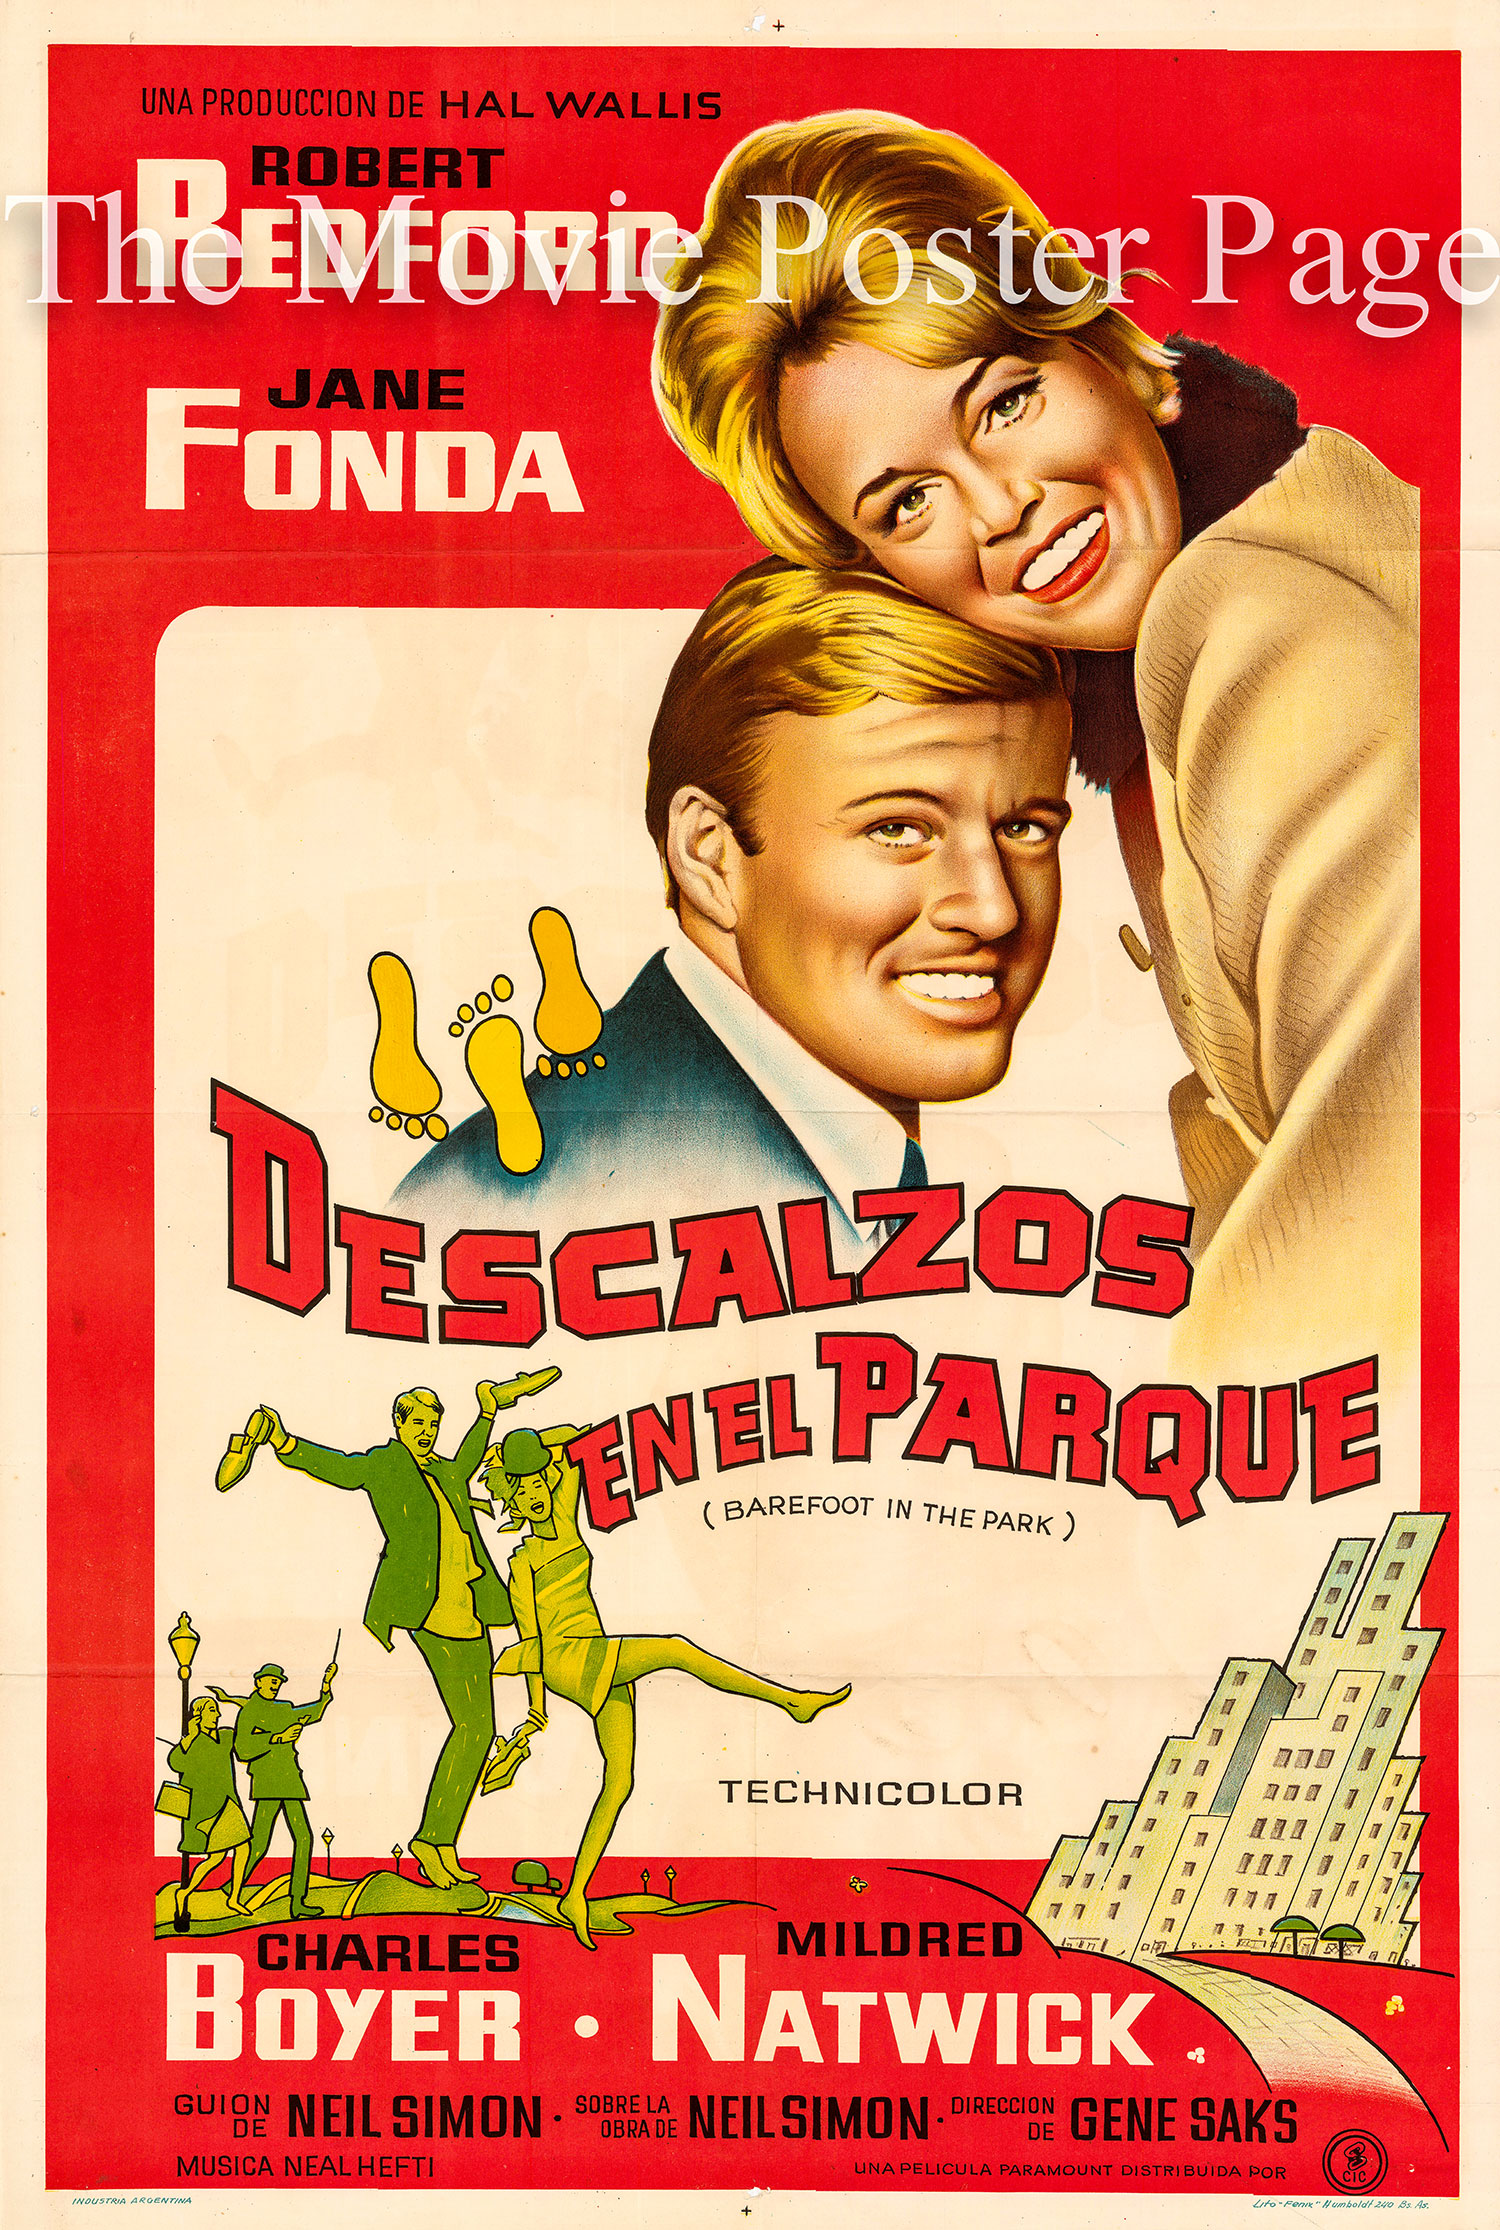 Pictured is an Argentine promotional one-sheet for the 1967 Gene Saks film Barefoot in the Park starring Jane Fonda and Robert Redford.